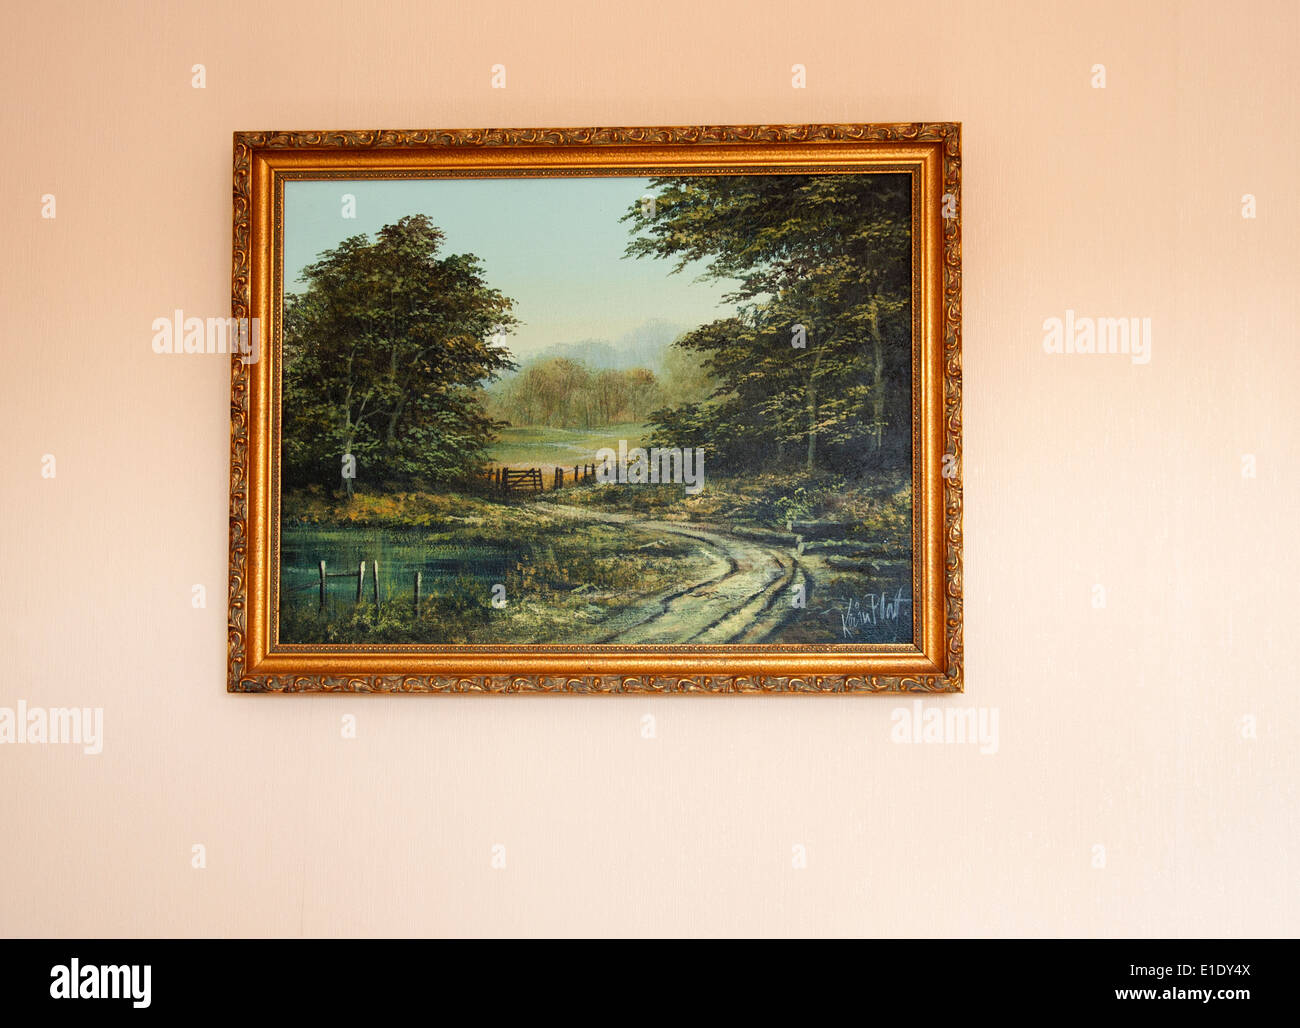 Original Oil Painting Hanging On A Wall Stock Photo 69762810 Alamy